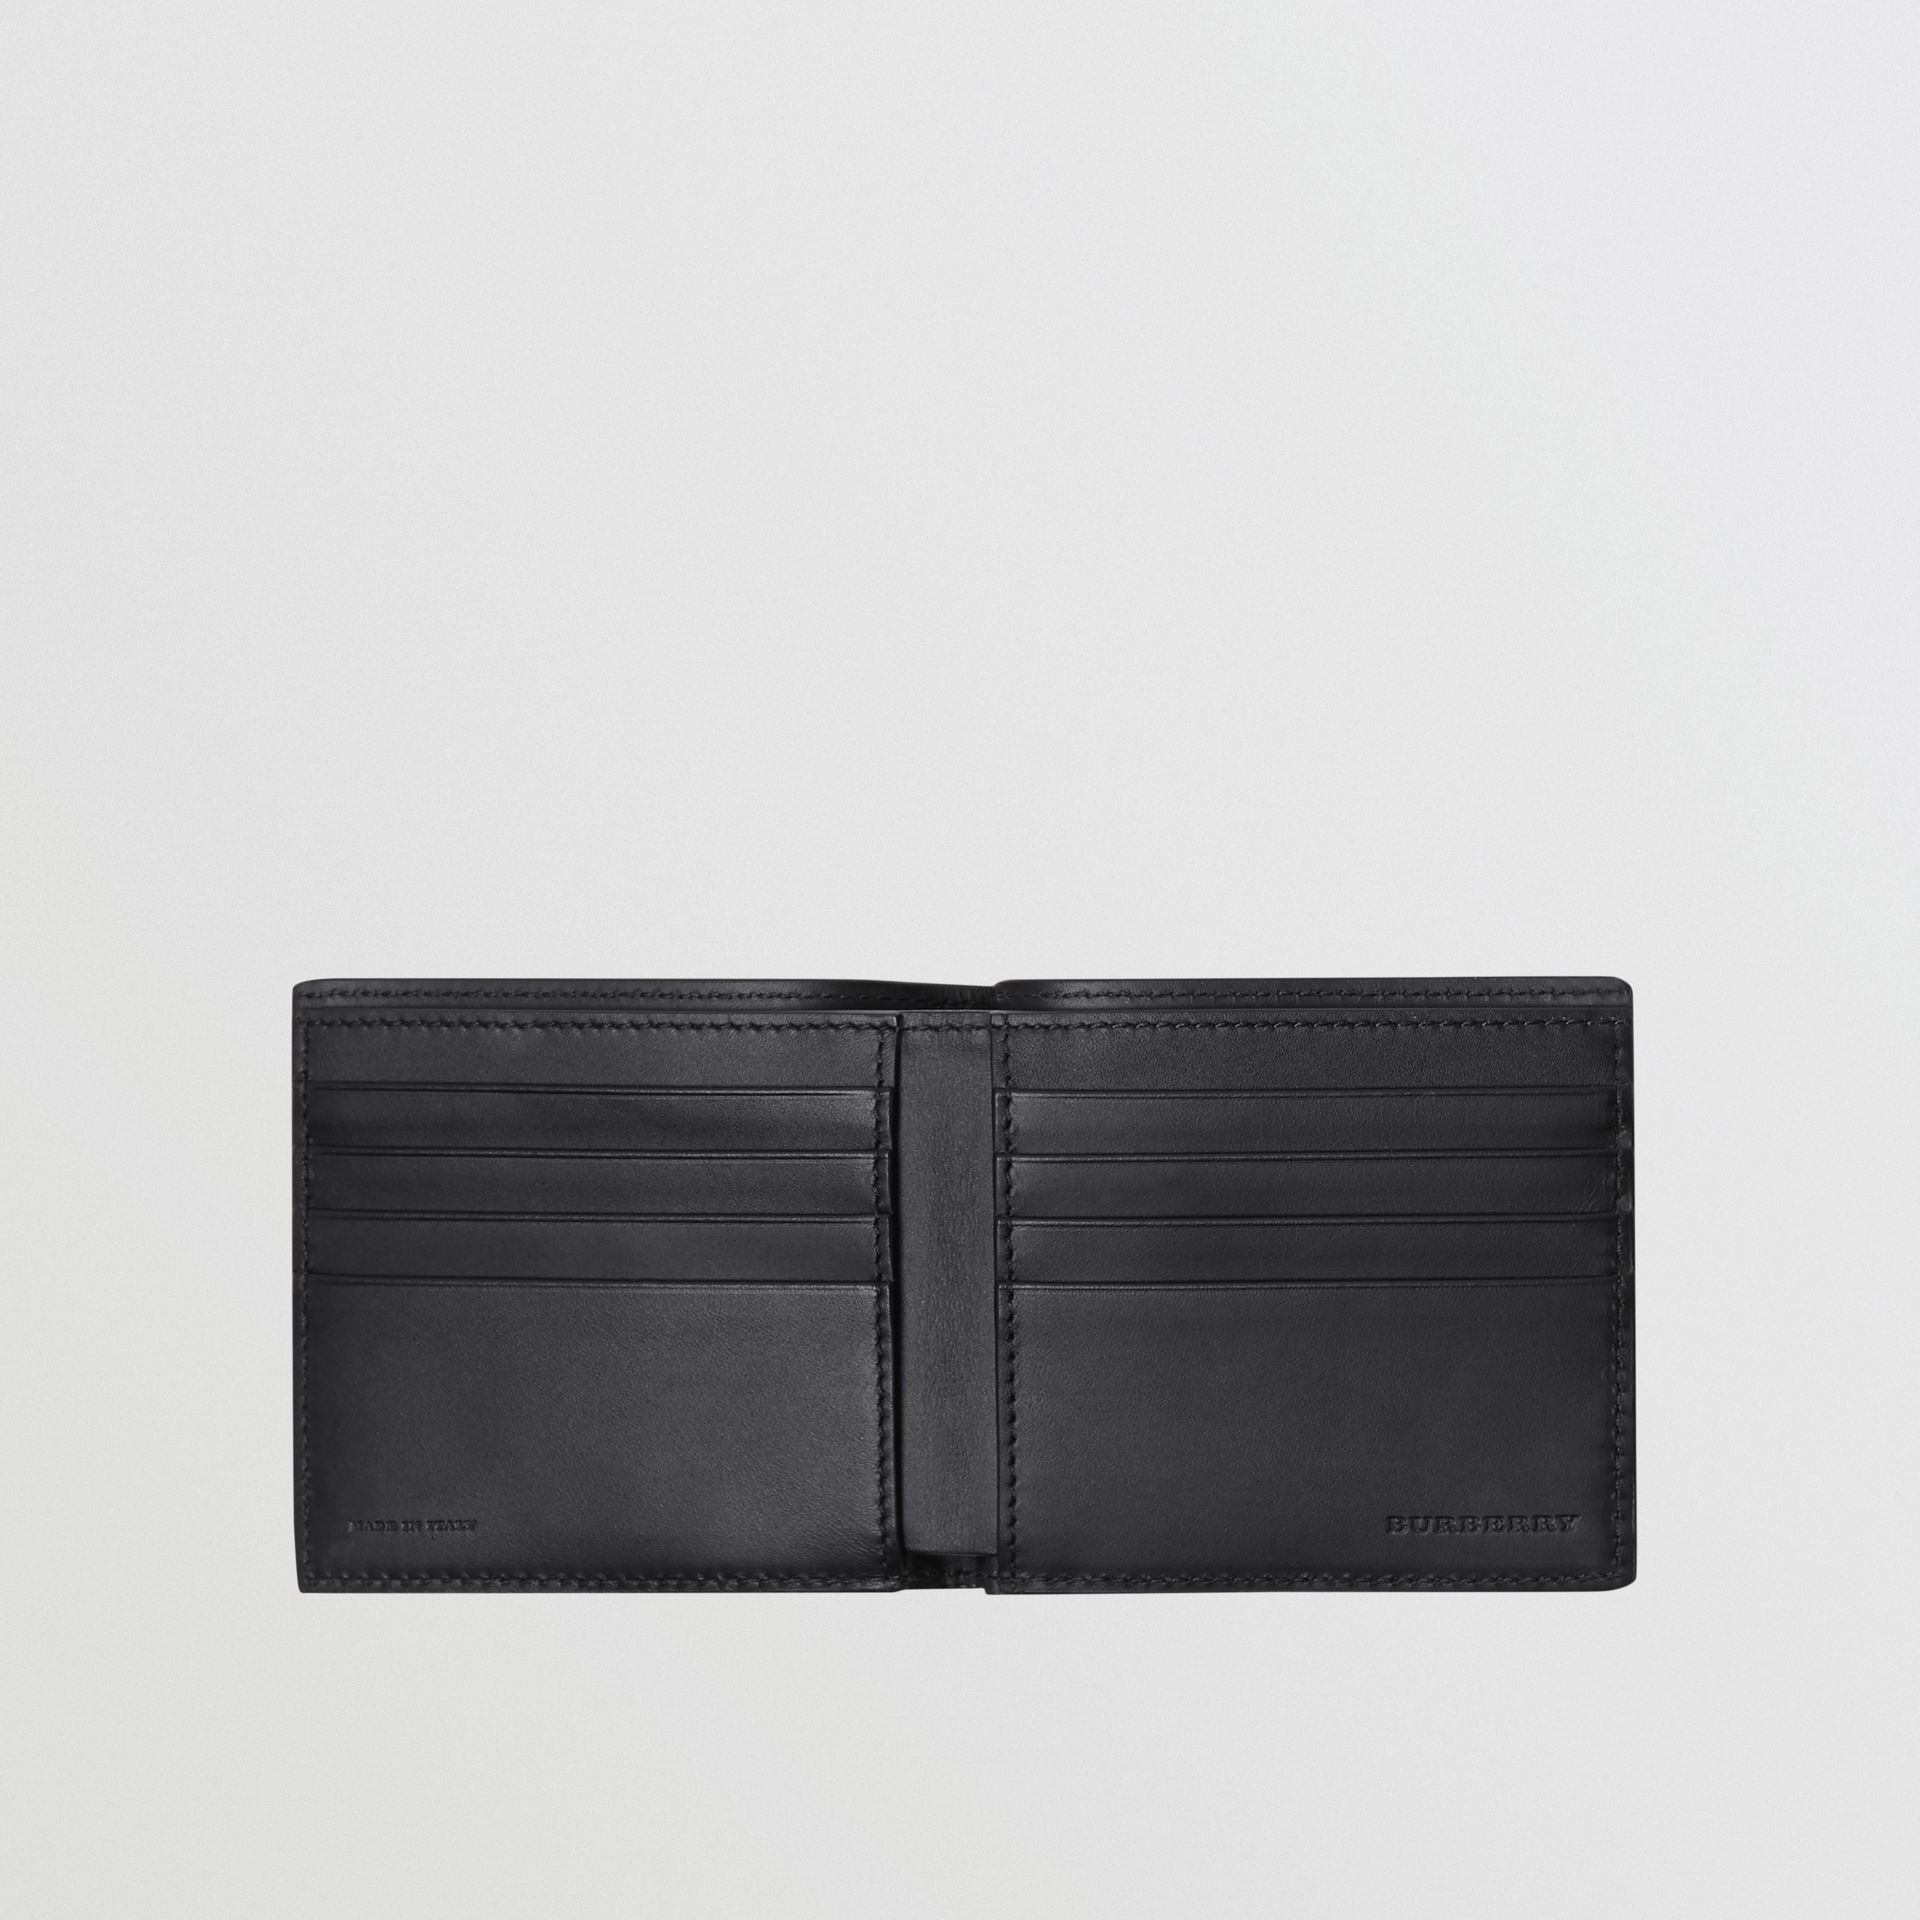 Embossed Crest Leather International Bifold Wallet in Black - Men | Burberry Canada - gallery image 3